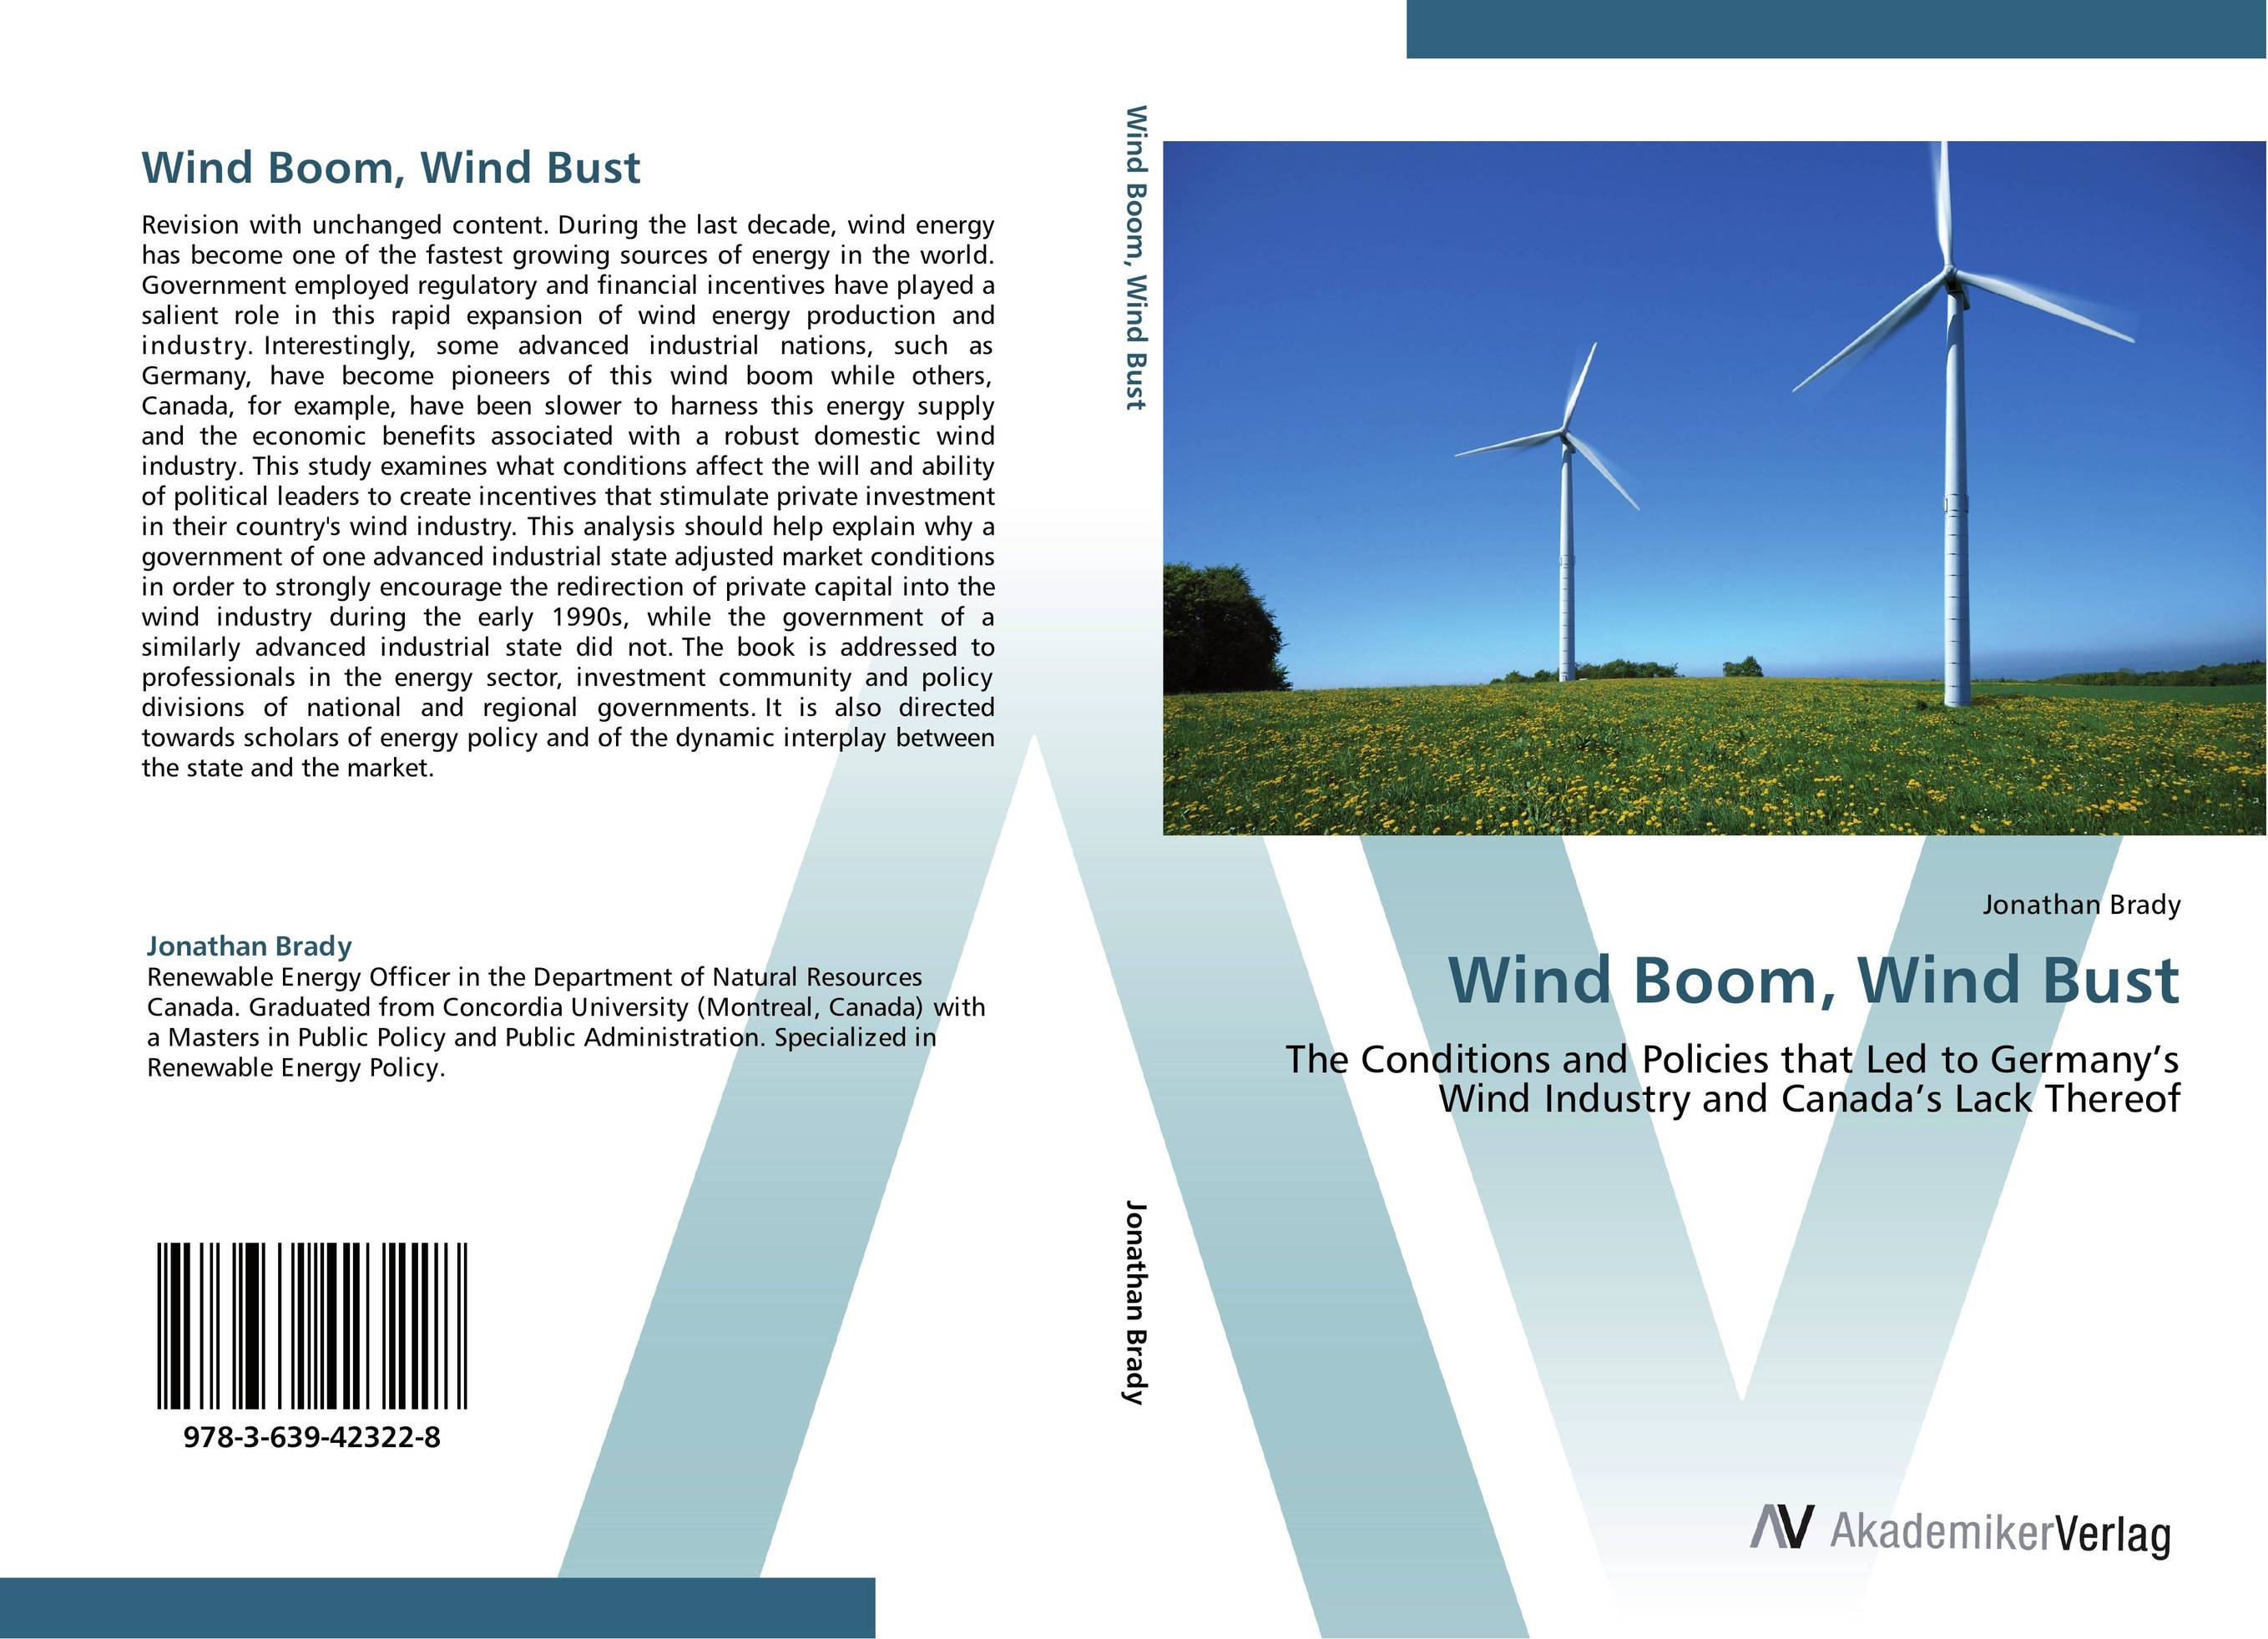 Wind Boom, Wind Bust the world aluminum industry in a changing energy e ra